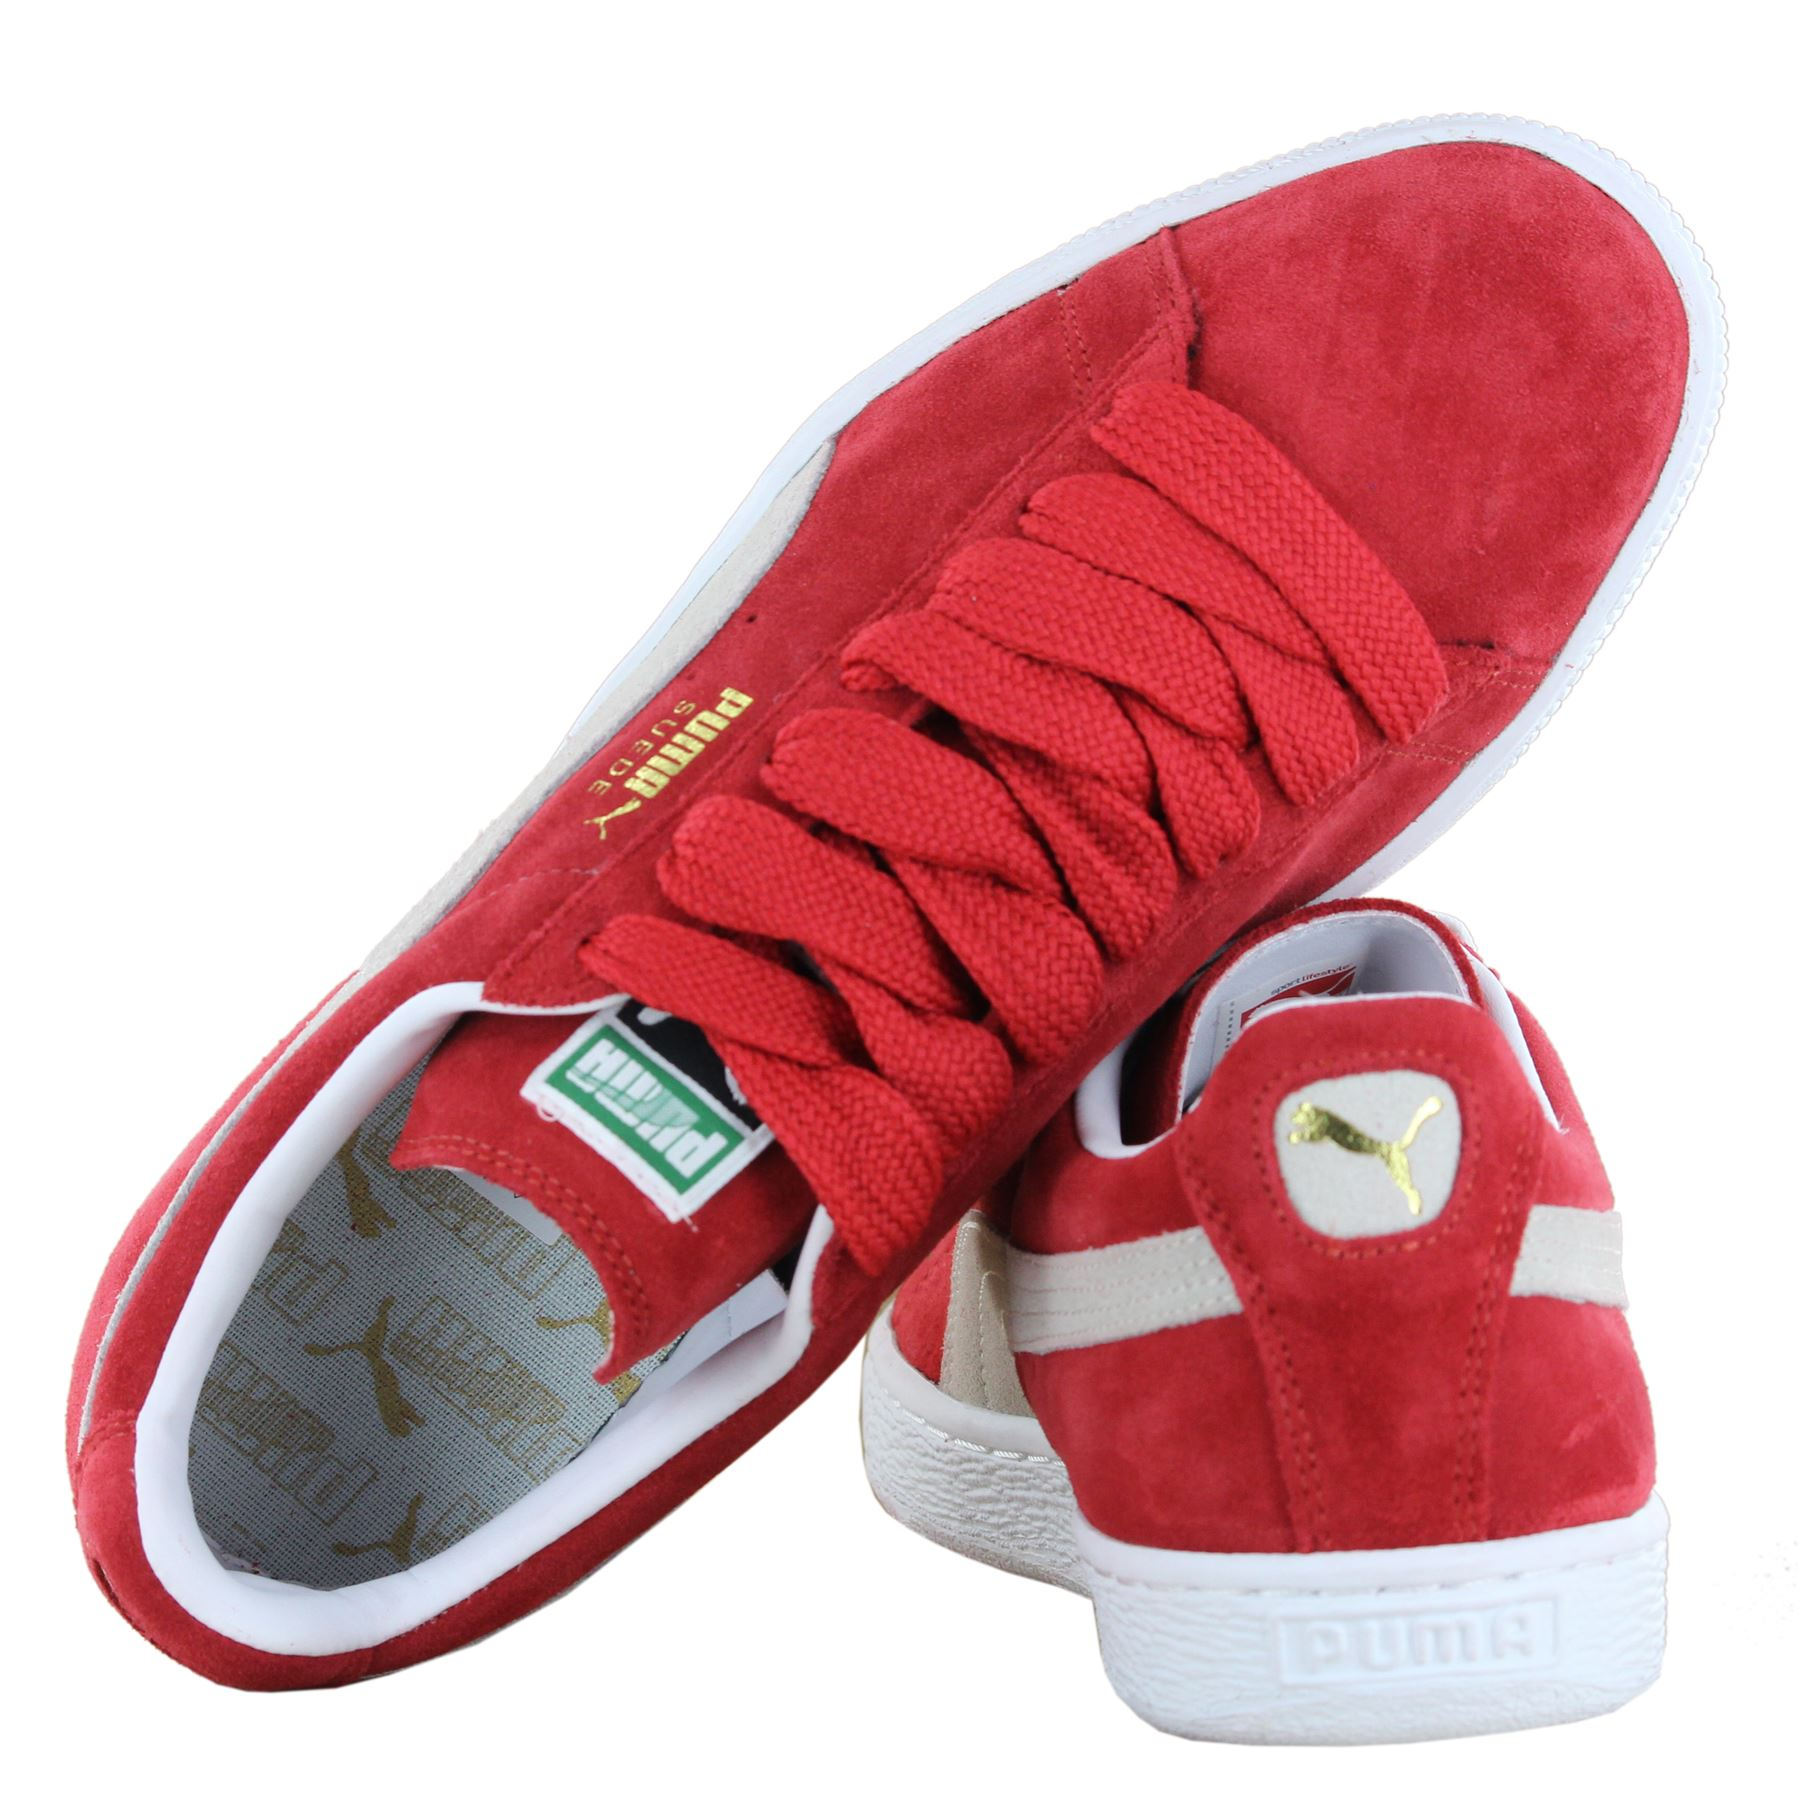 Puma Classic Suede Women Men Unisex Retro Low Top Trainers